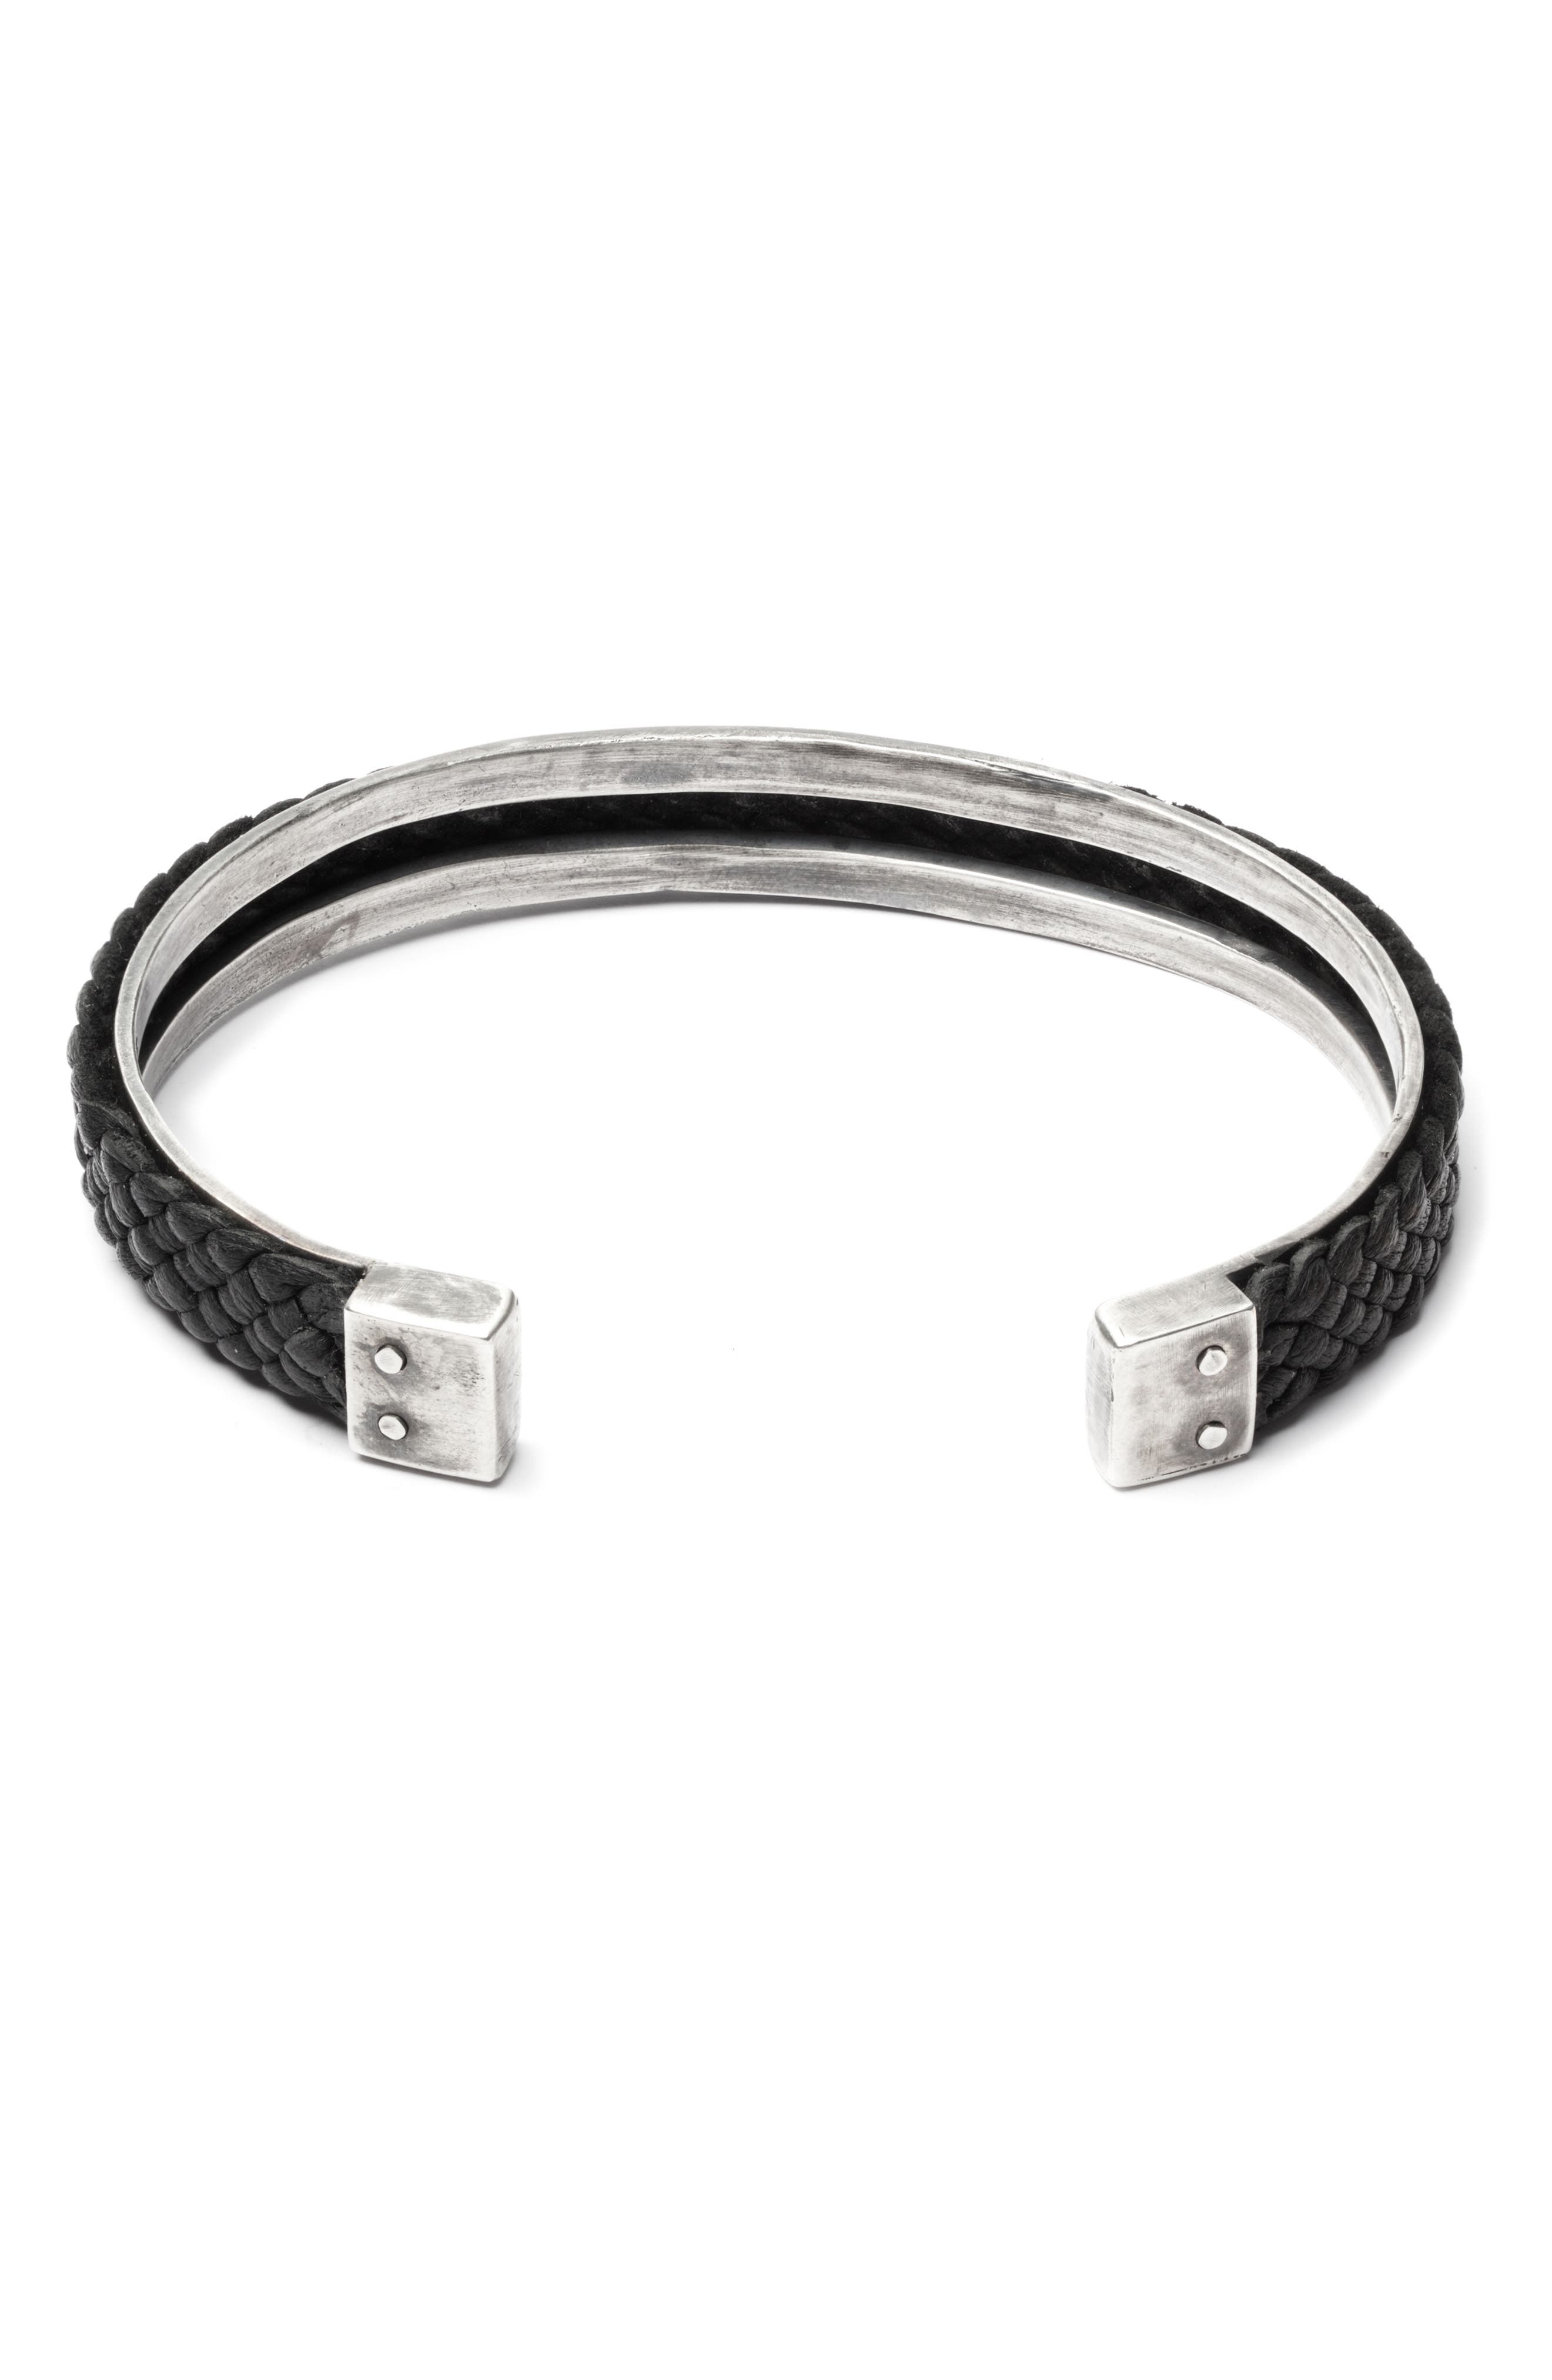 Braided Leather Cuff Bracelet,                         Main,                         color, BLACK/SILVER